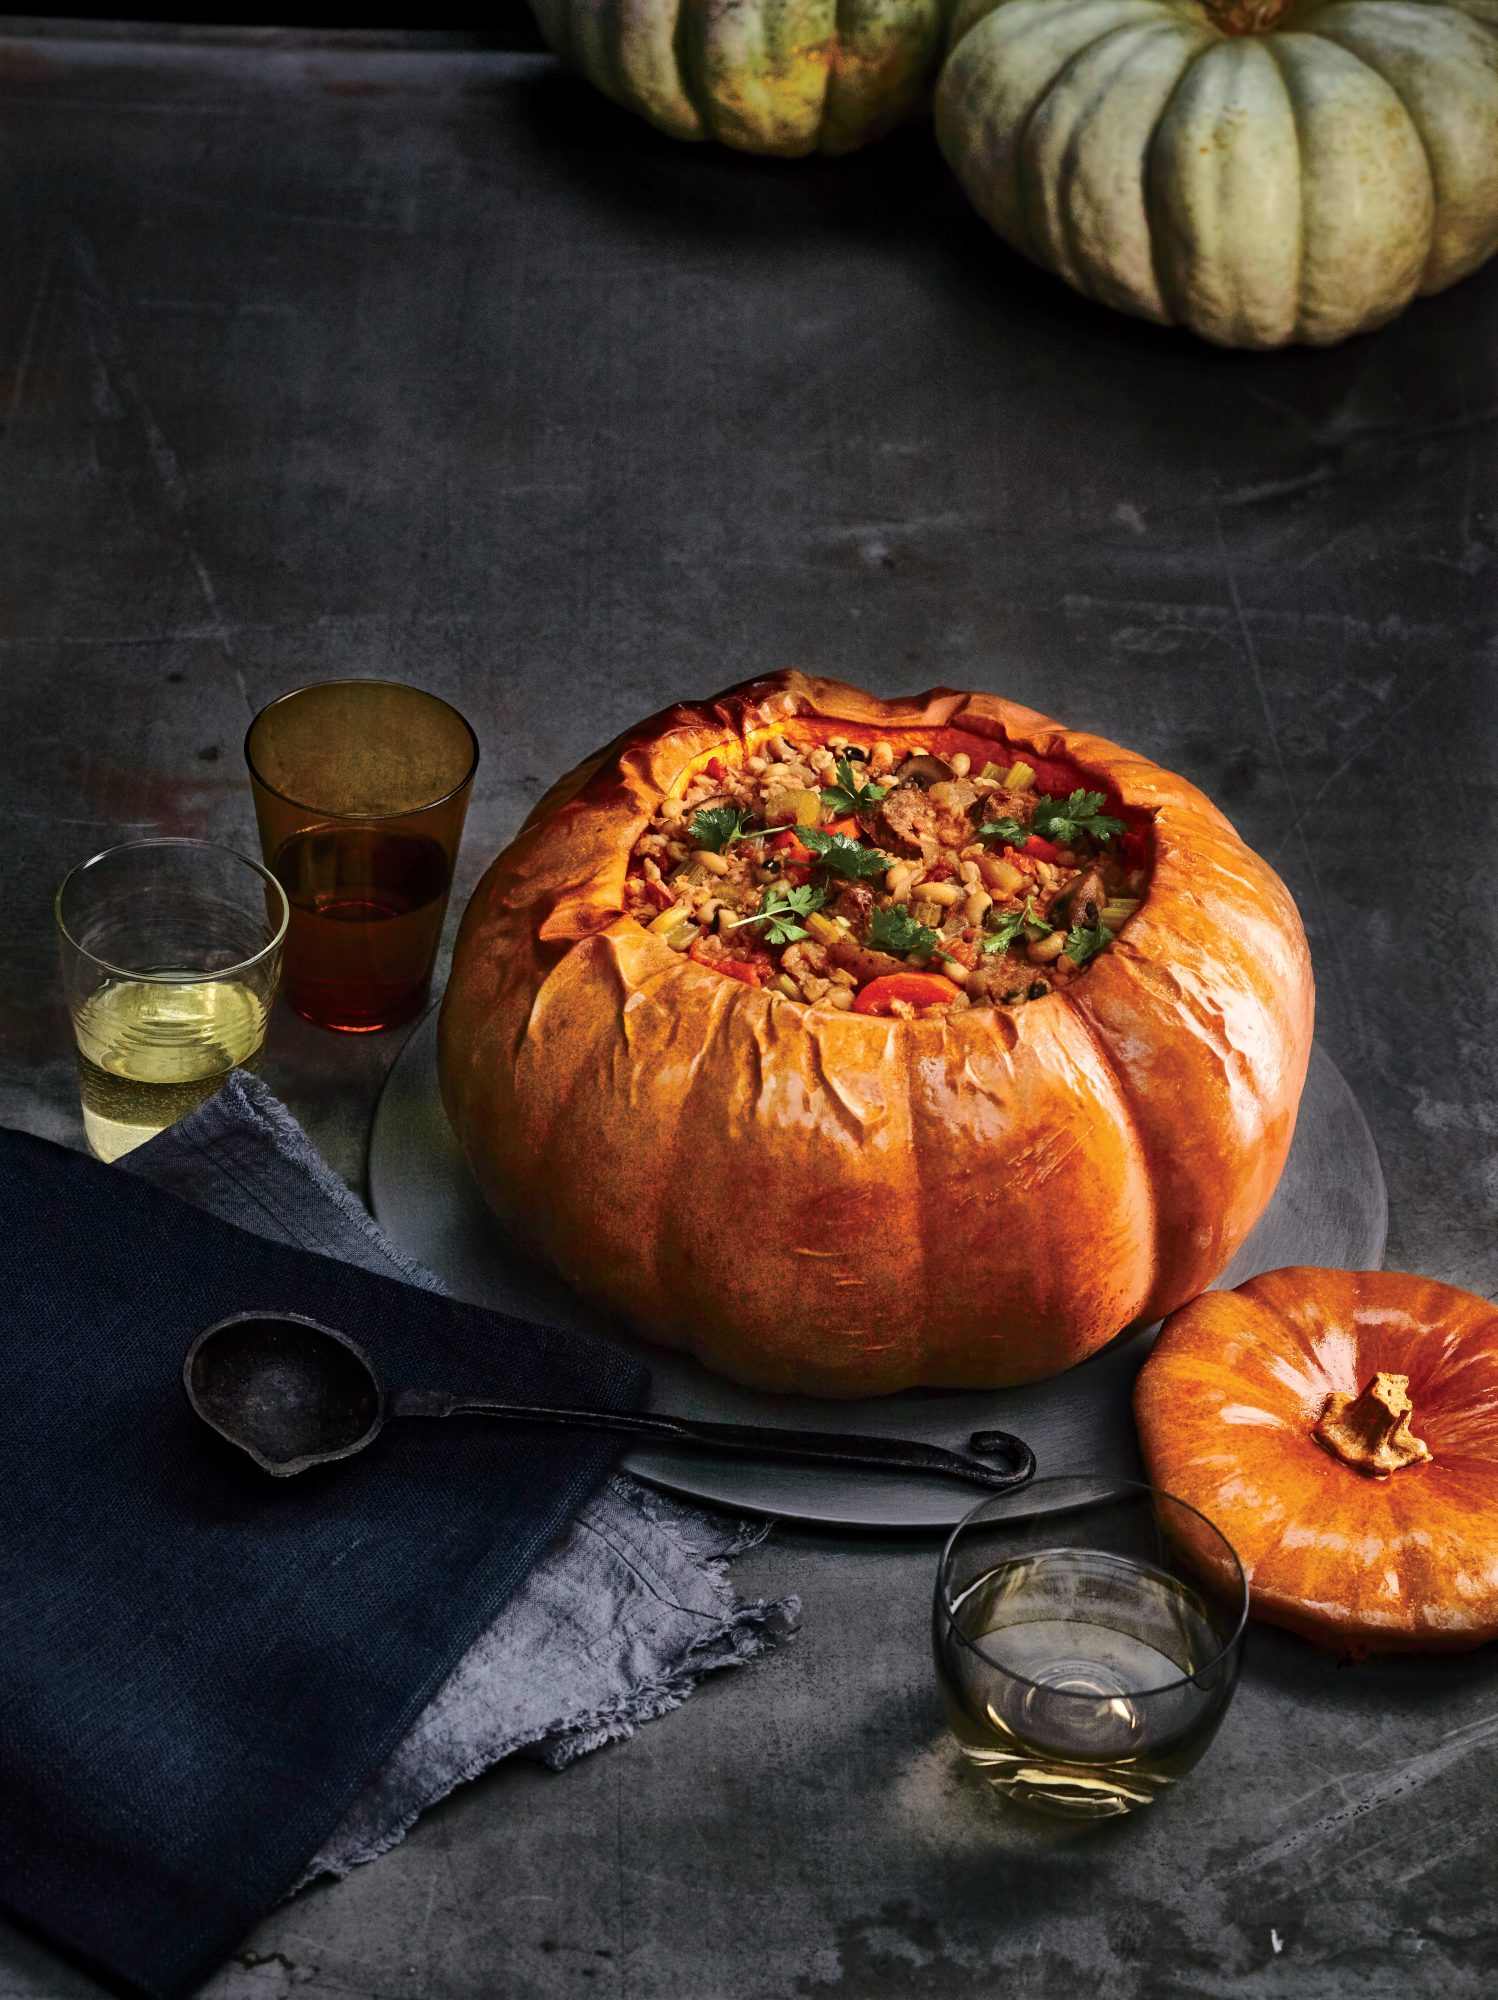 ck-Whole Stuffed Roasted Pumpkin Image